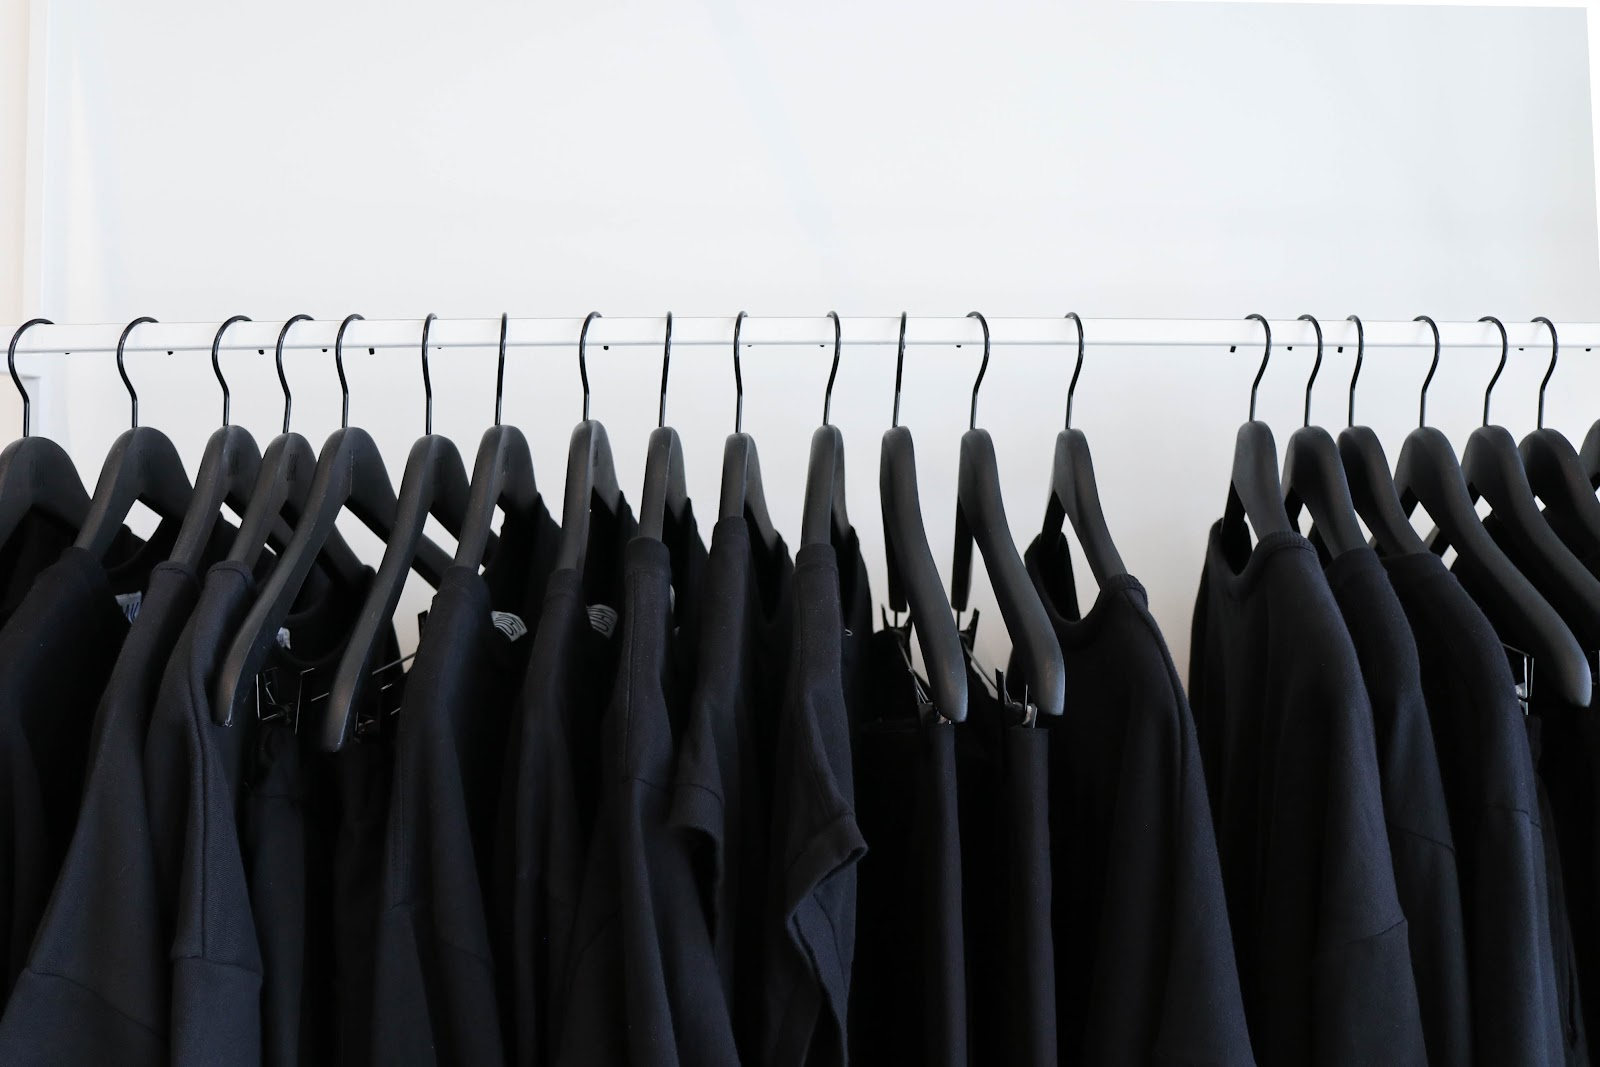 Black shirts hanging on a hanger